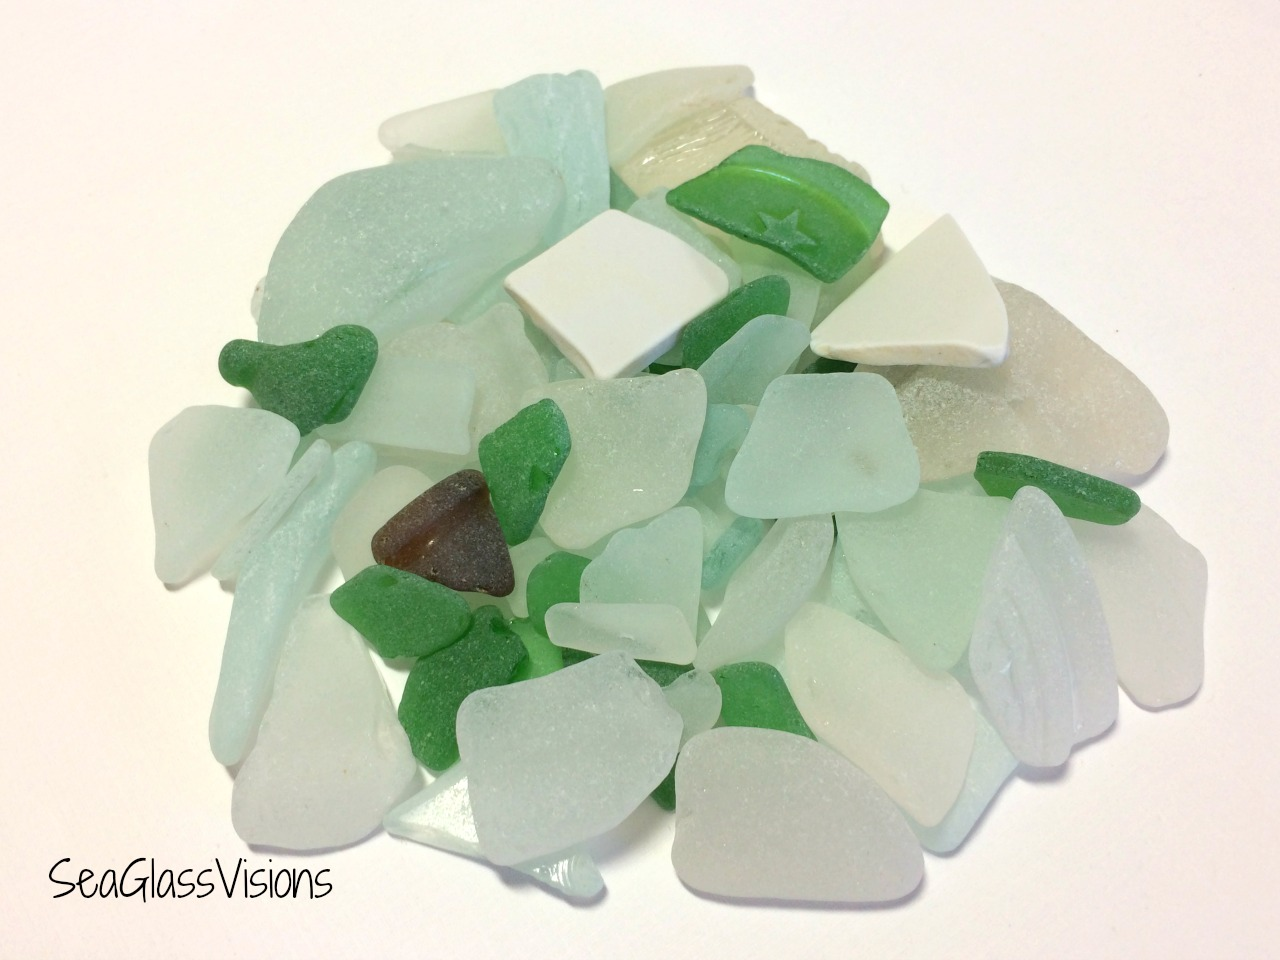 Lovely sea glass found on a beach behind Akrogiali Restaurant in Sounio, Greece